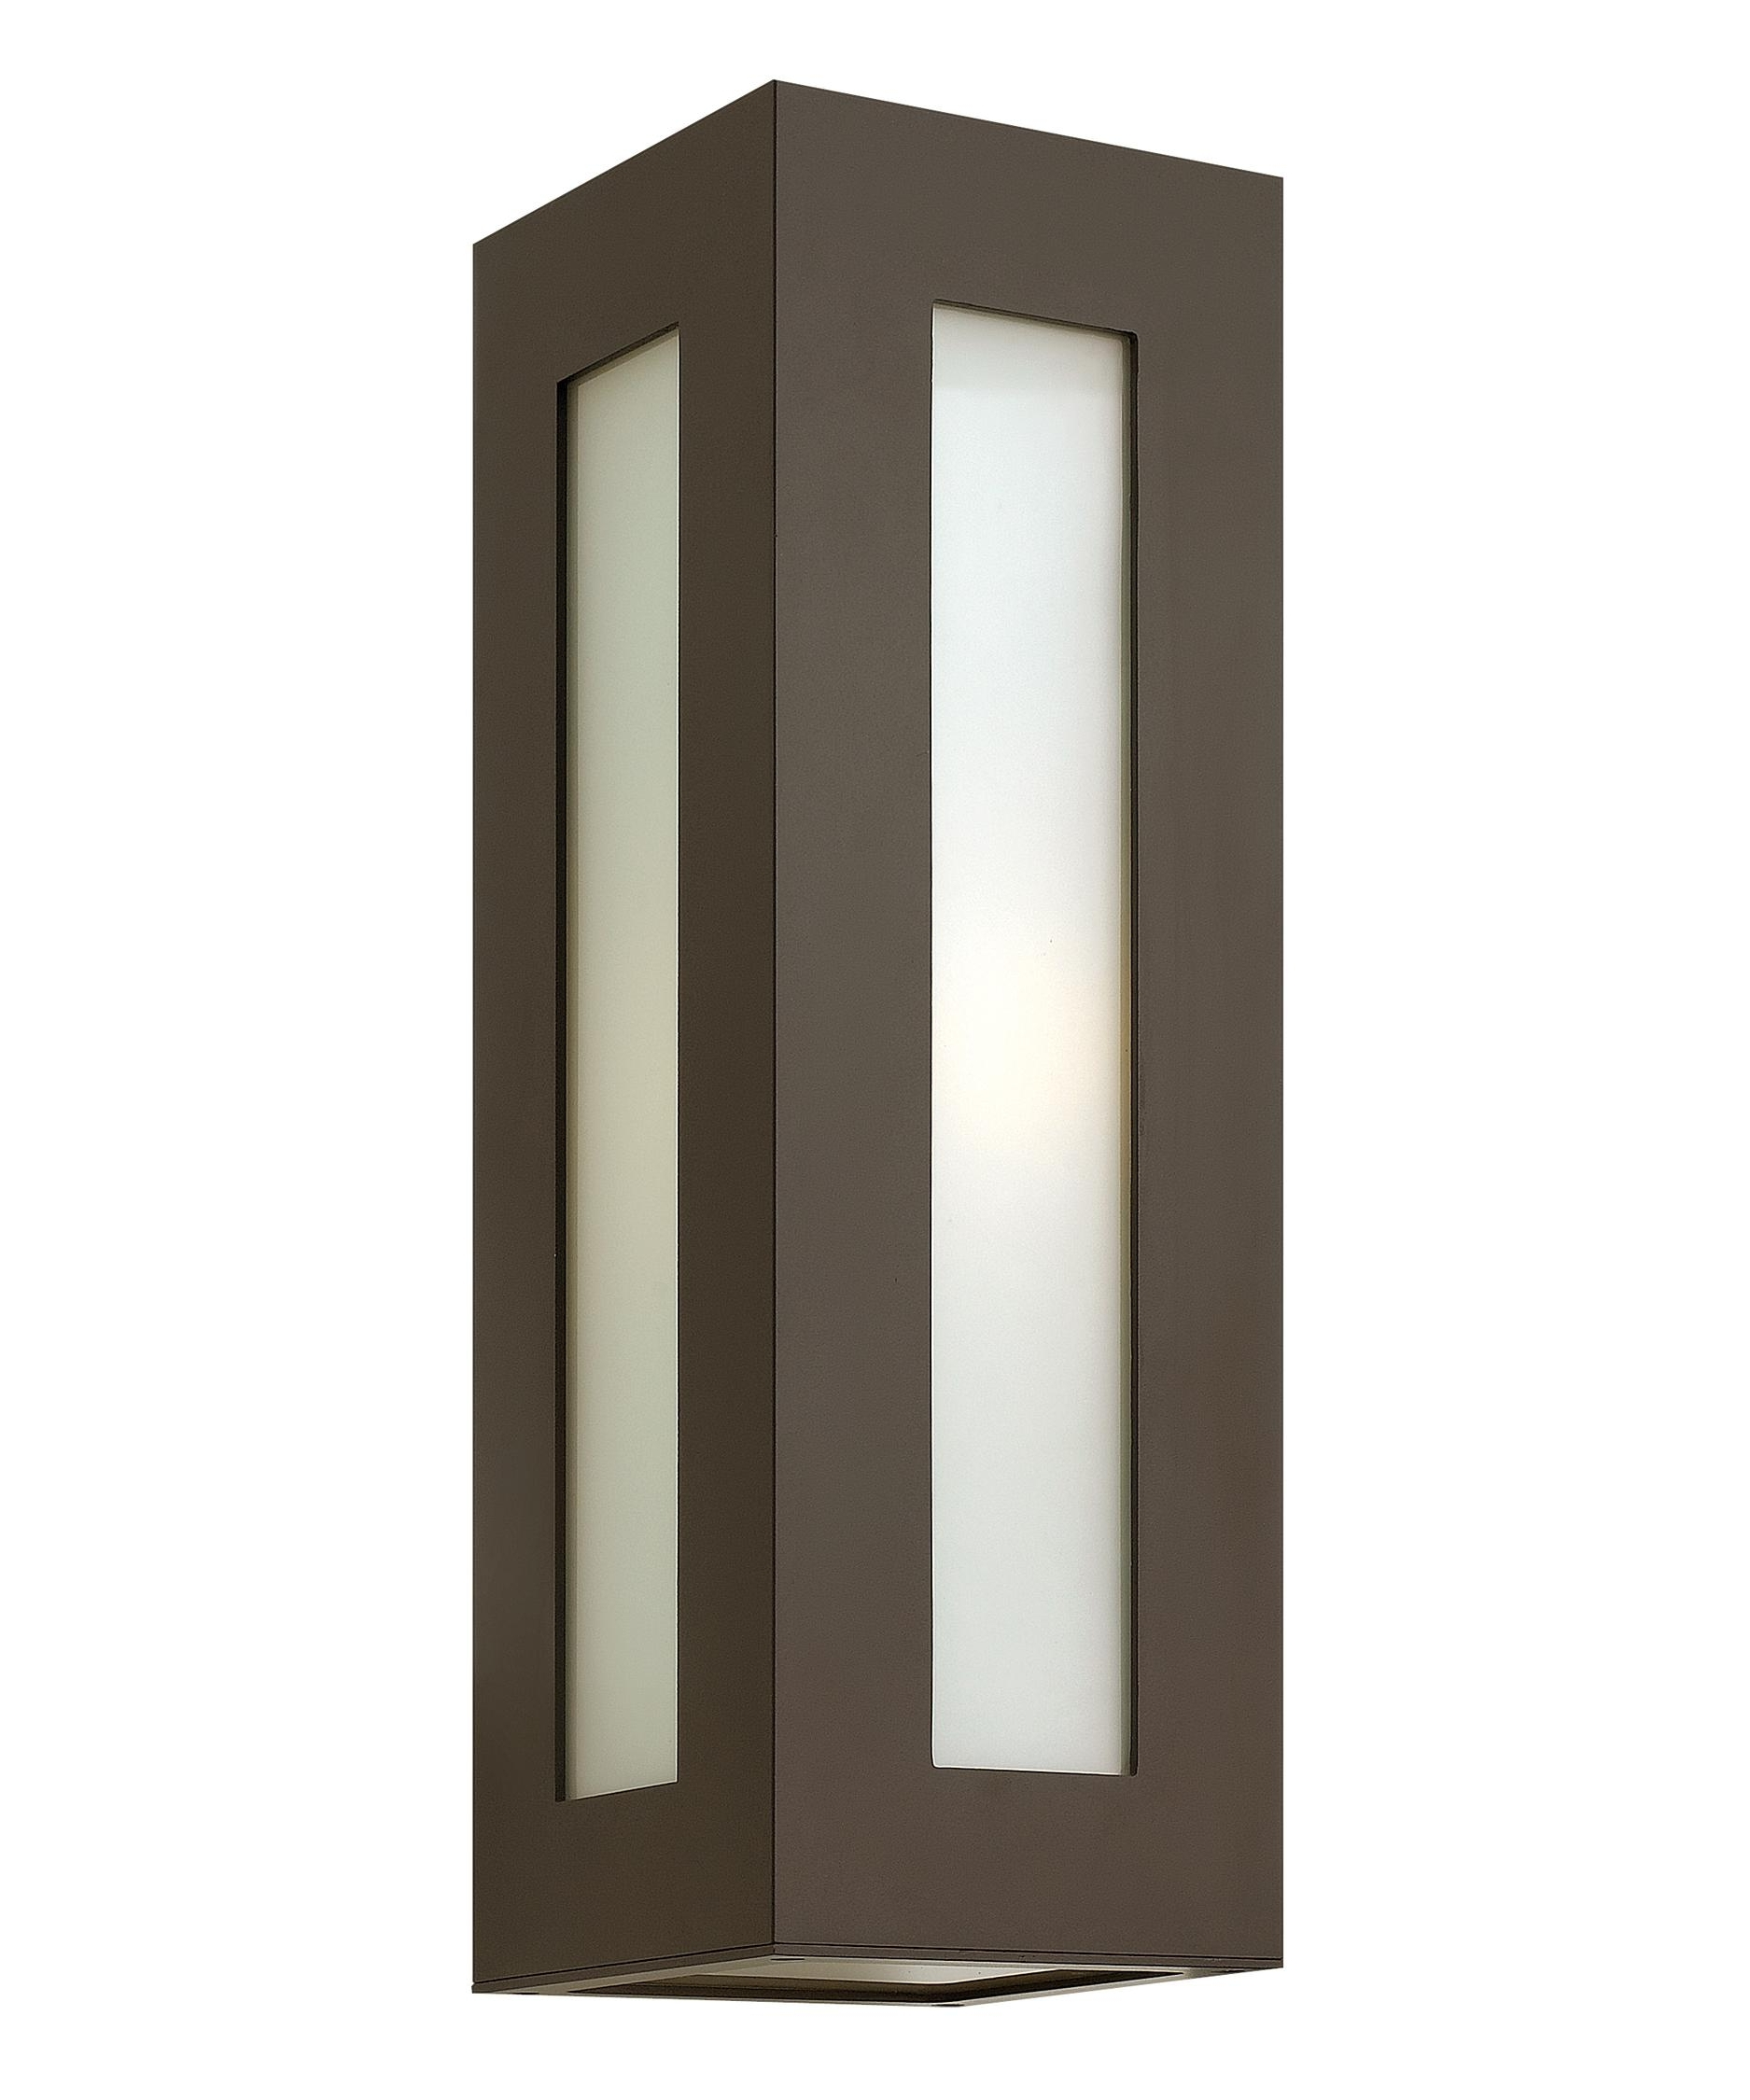 Best And Newest Contemporary Outdoor Wall Lighting With Regard To Hinkley Lighting 2194 Dorian 6 Inch Wide 1 Light Outdoor Wall Light (View 15 of 20)